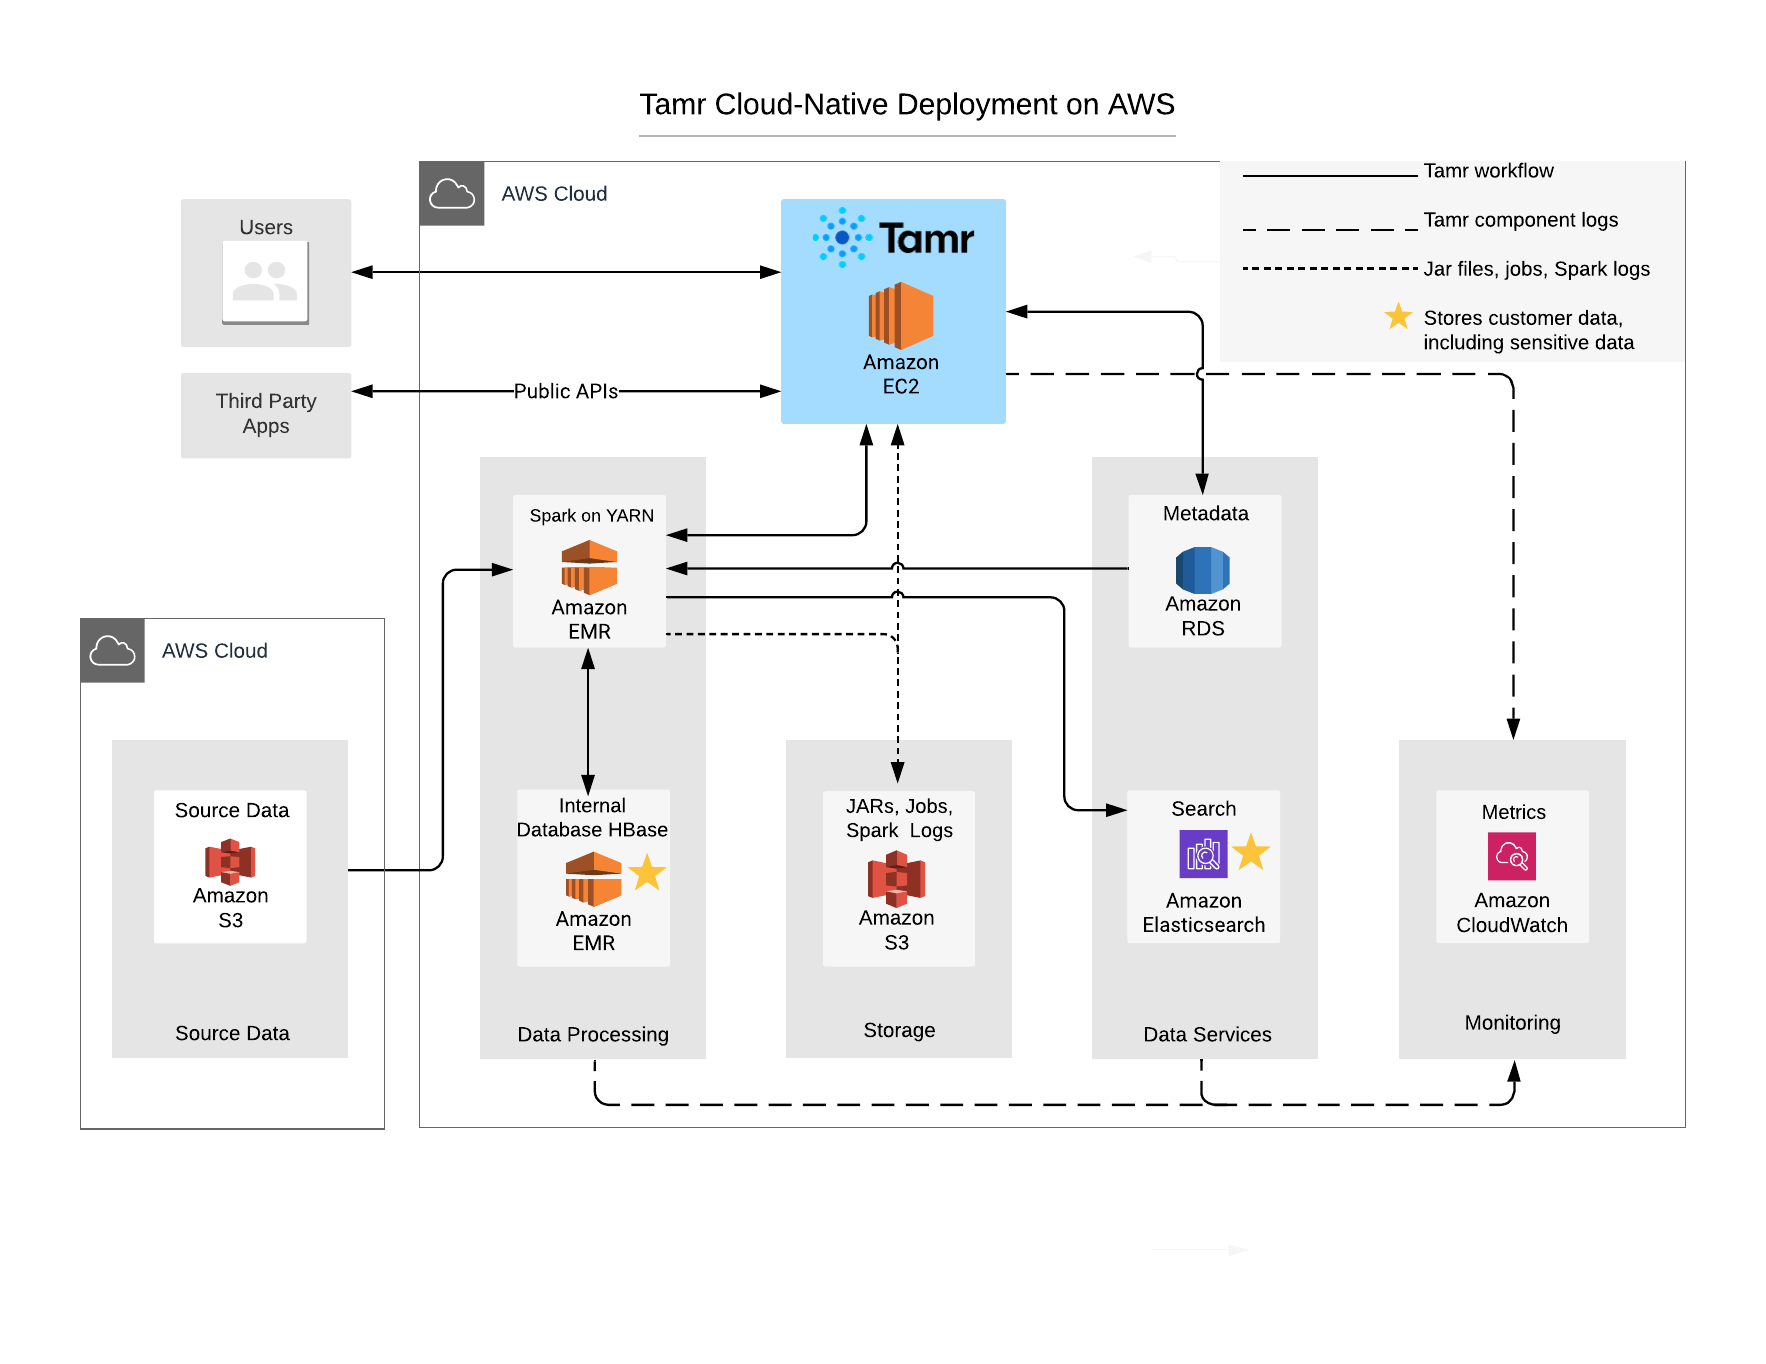 Tamr deployed on AWS with component resources described below